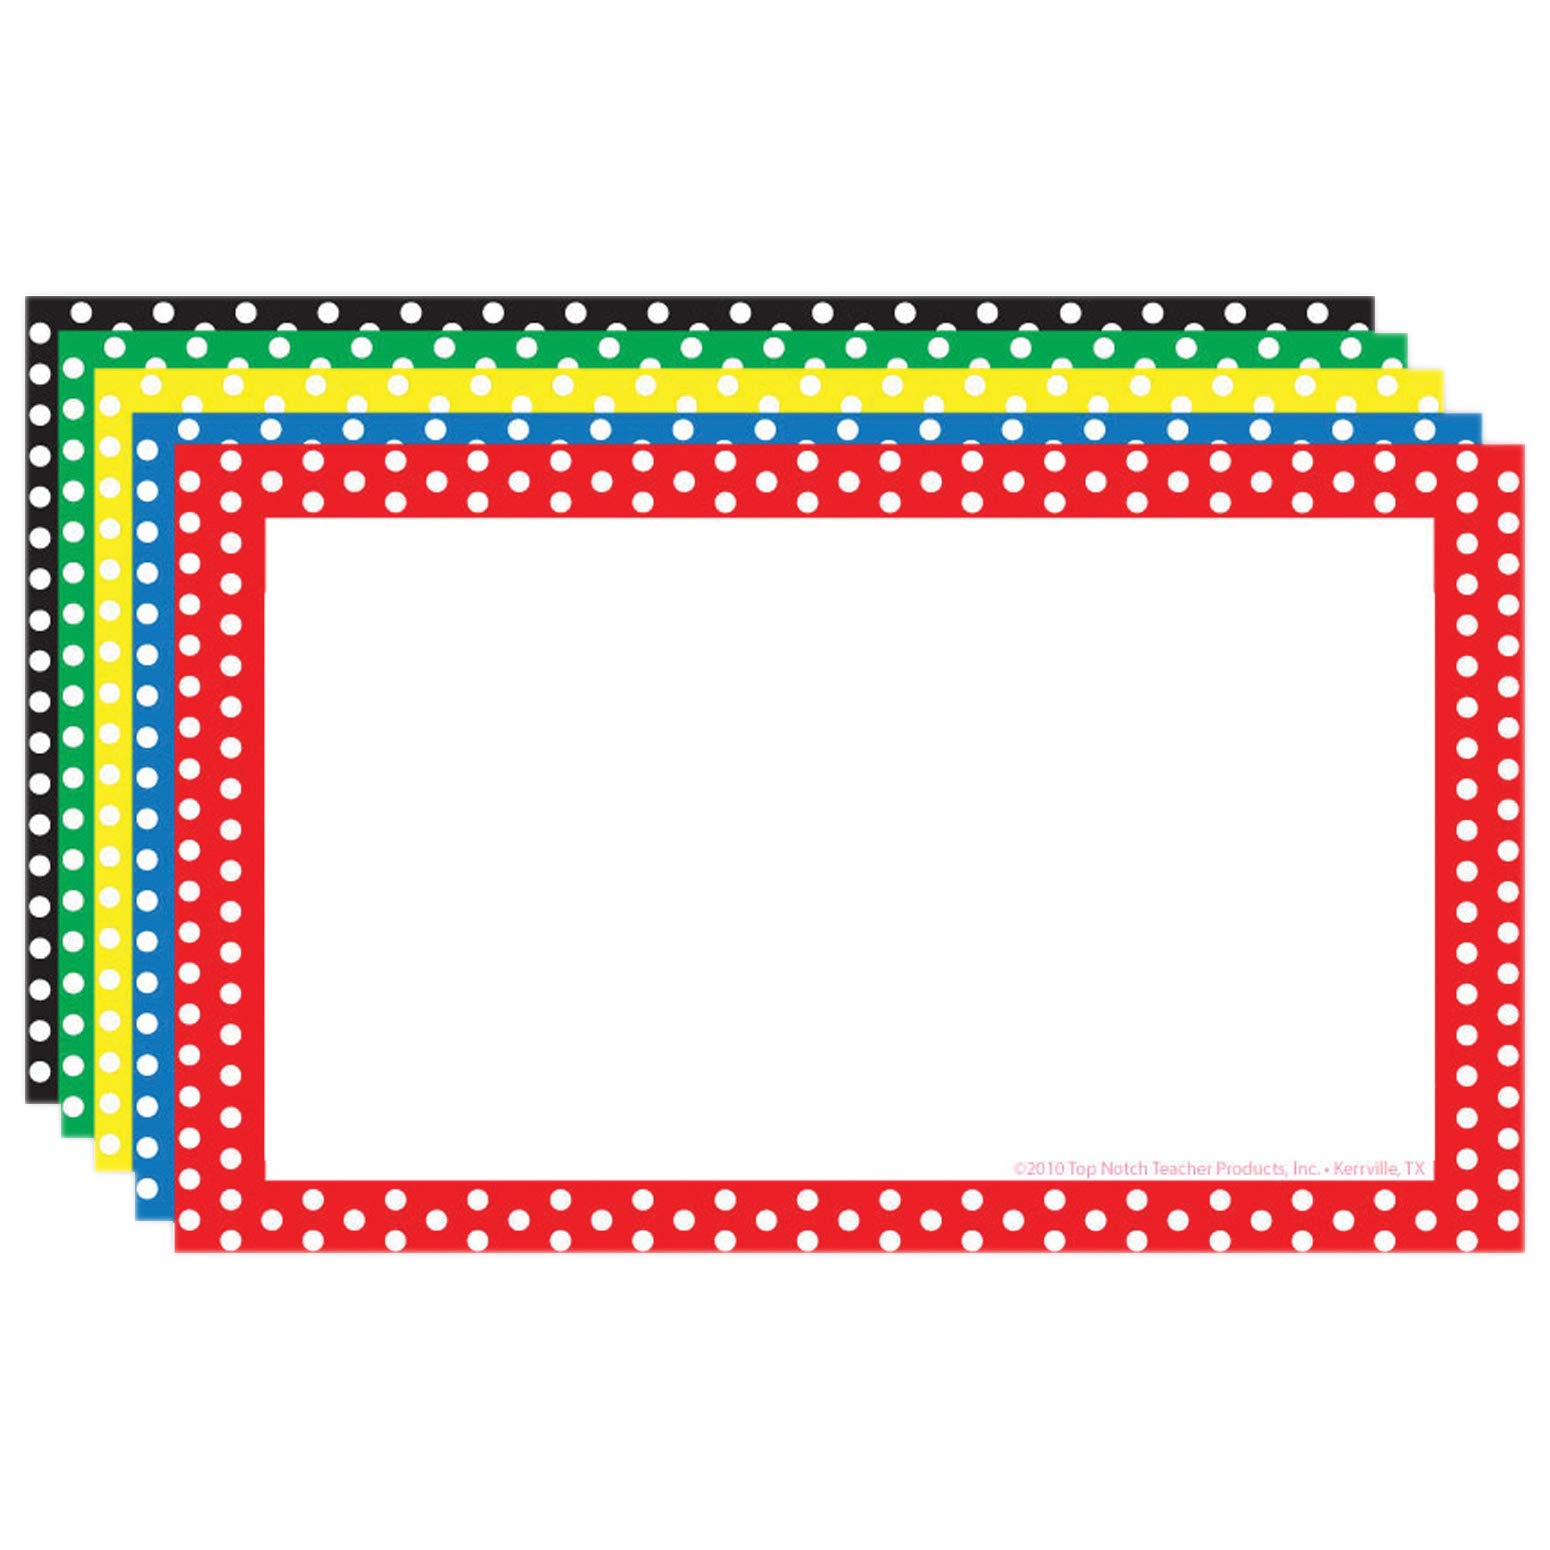 Top Notch Teacher Products TOP3655BN Border Index Cards, 4'' x 6'' Blank, Polka Dot, 75 Per Pack, 6 Packs by Top Notch Teacher Products